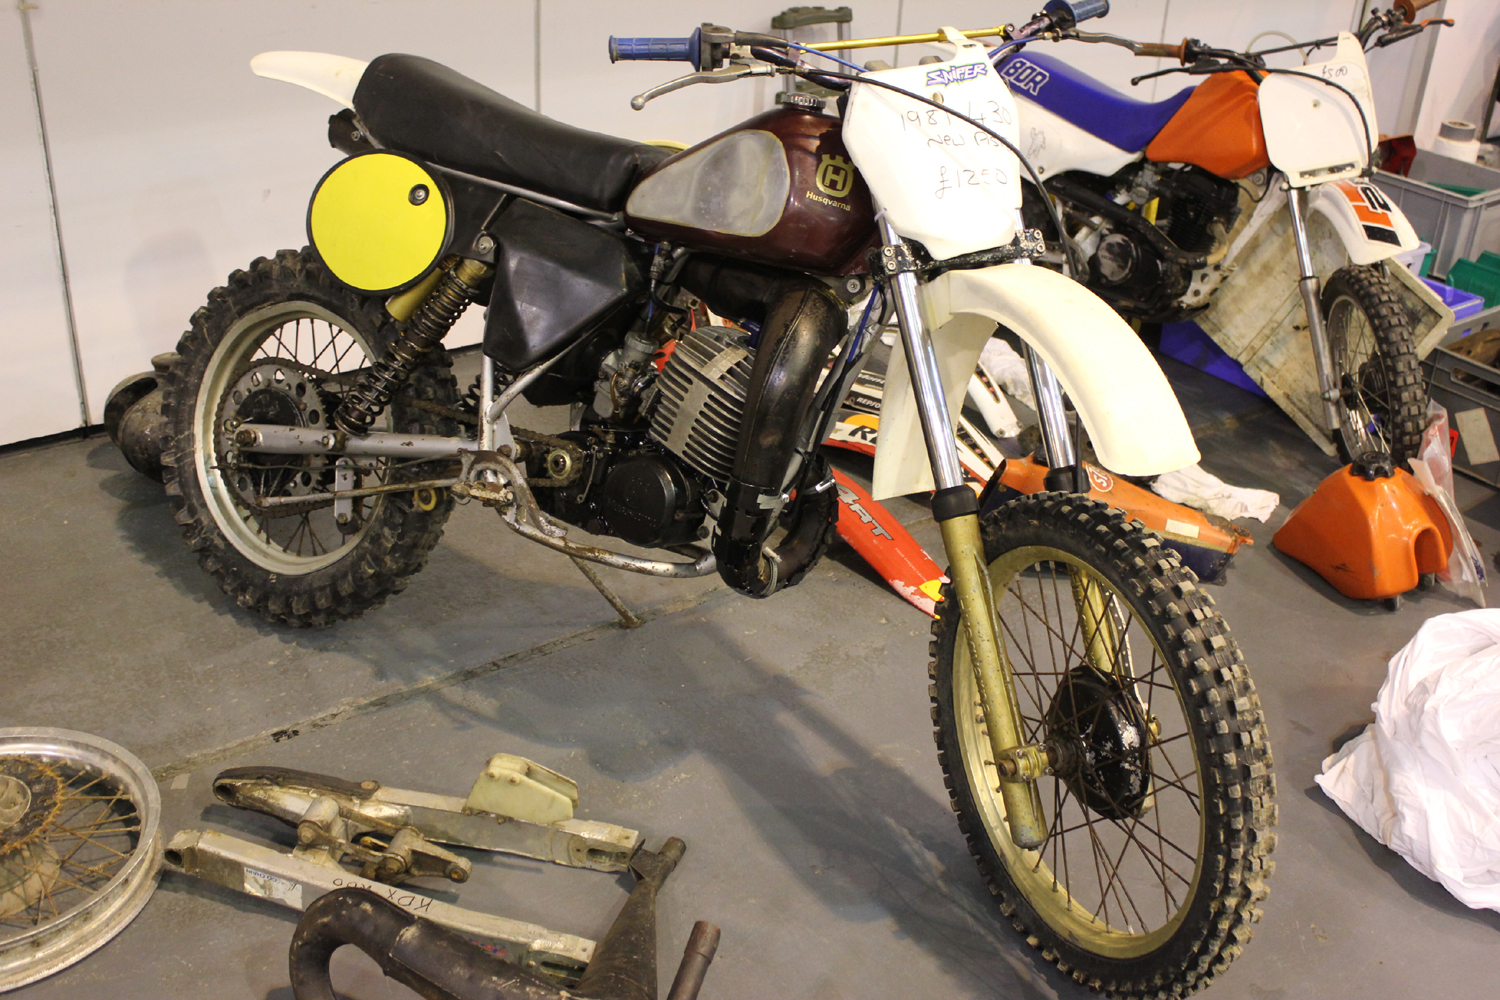 classicdirtbikerider.com-photo by Mr J-2015 Telford classic dirt bike show-1981 HUSQVARNA CR430 FOR SALE